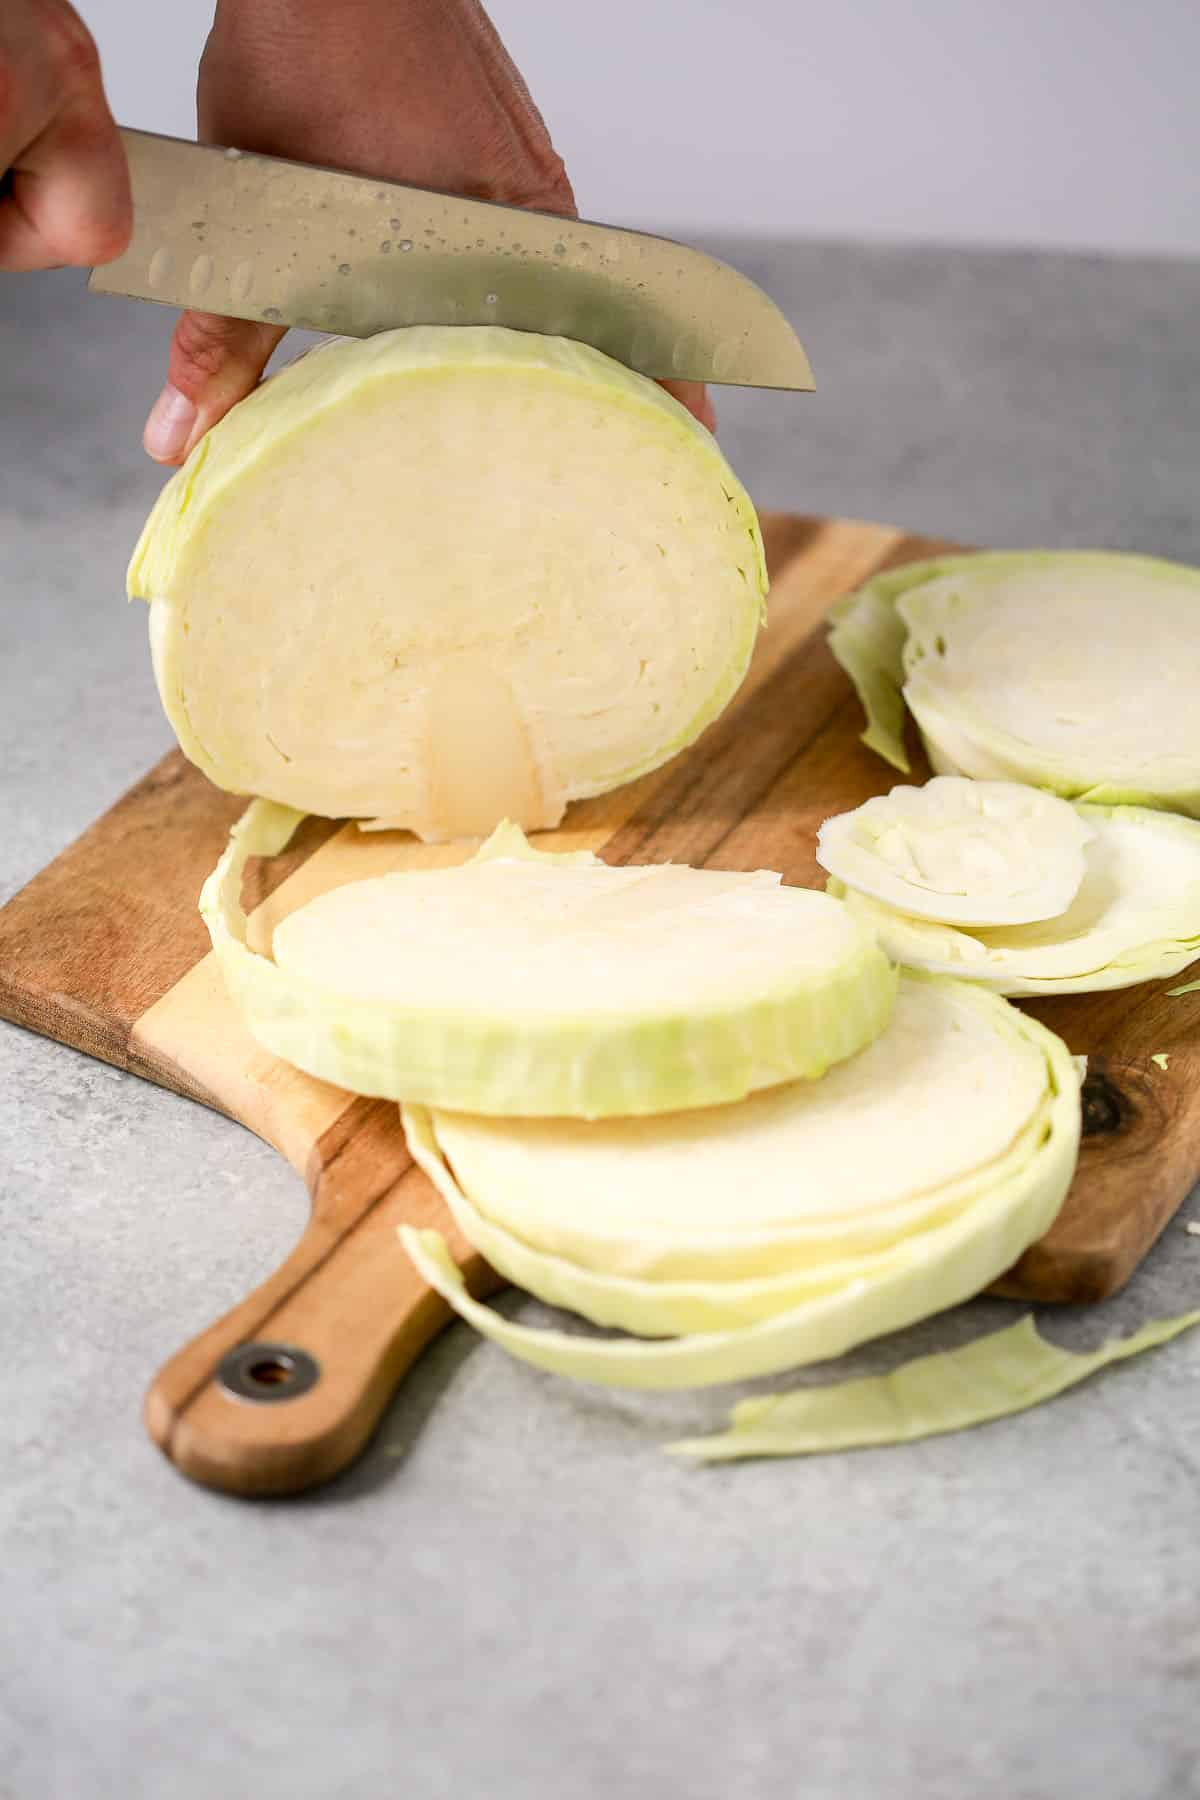 slicing cabbage steaks on a cutting board